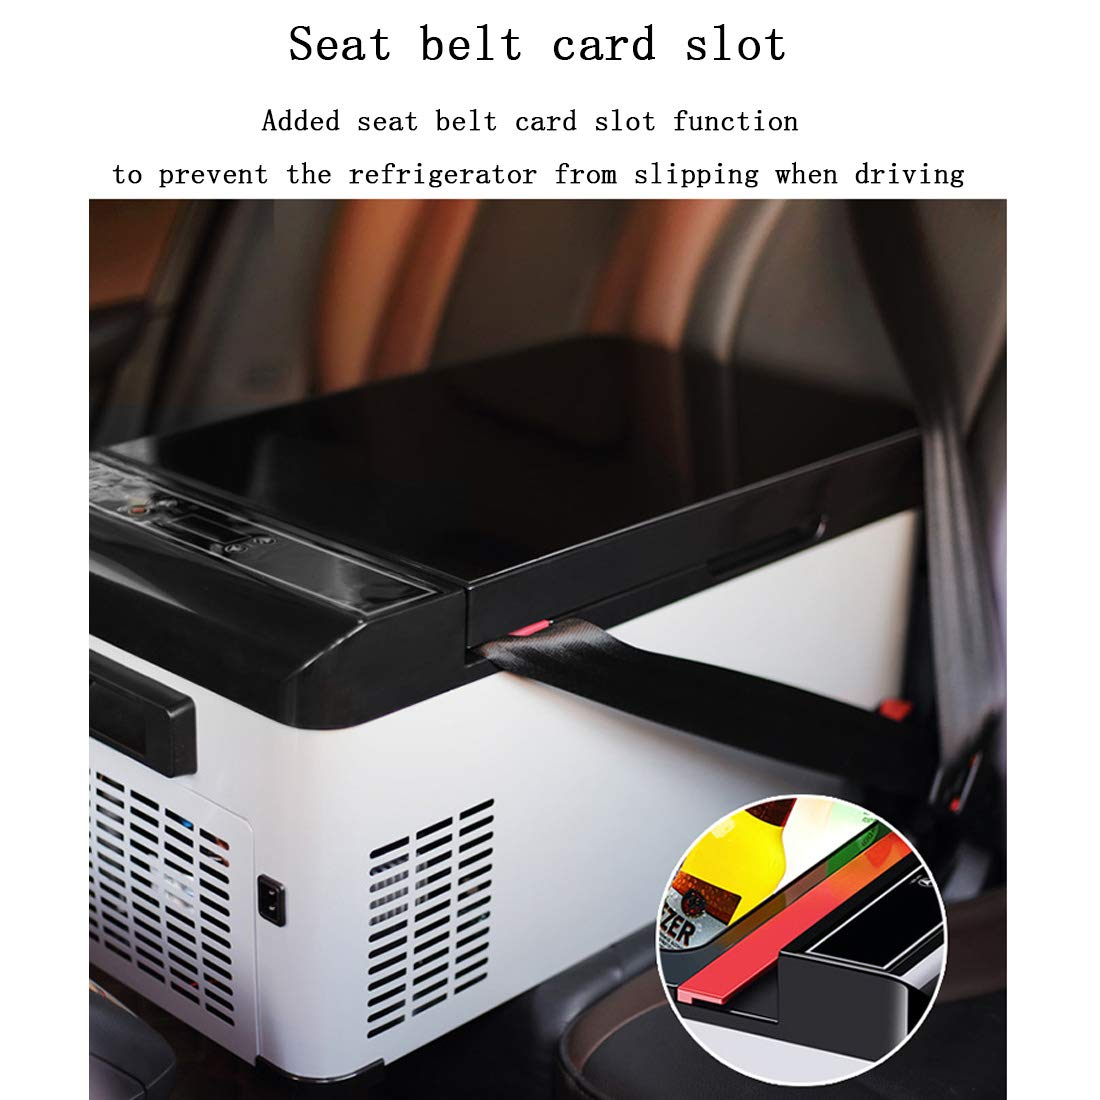 Interior Accessories Car Refrigerator Intelligent LCD Touch Screen,Oscillation Protection,Compressor Refrigeration,Overvoltage Protection-DC12/24V-AC220V 17.3L